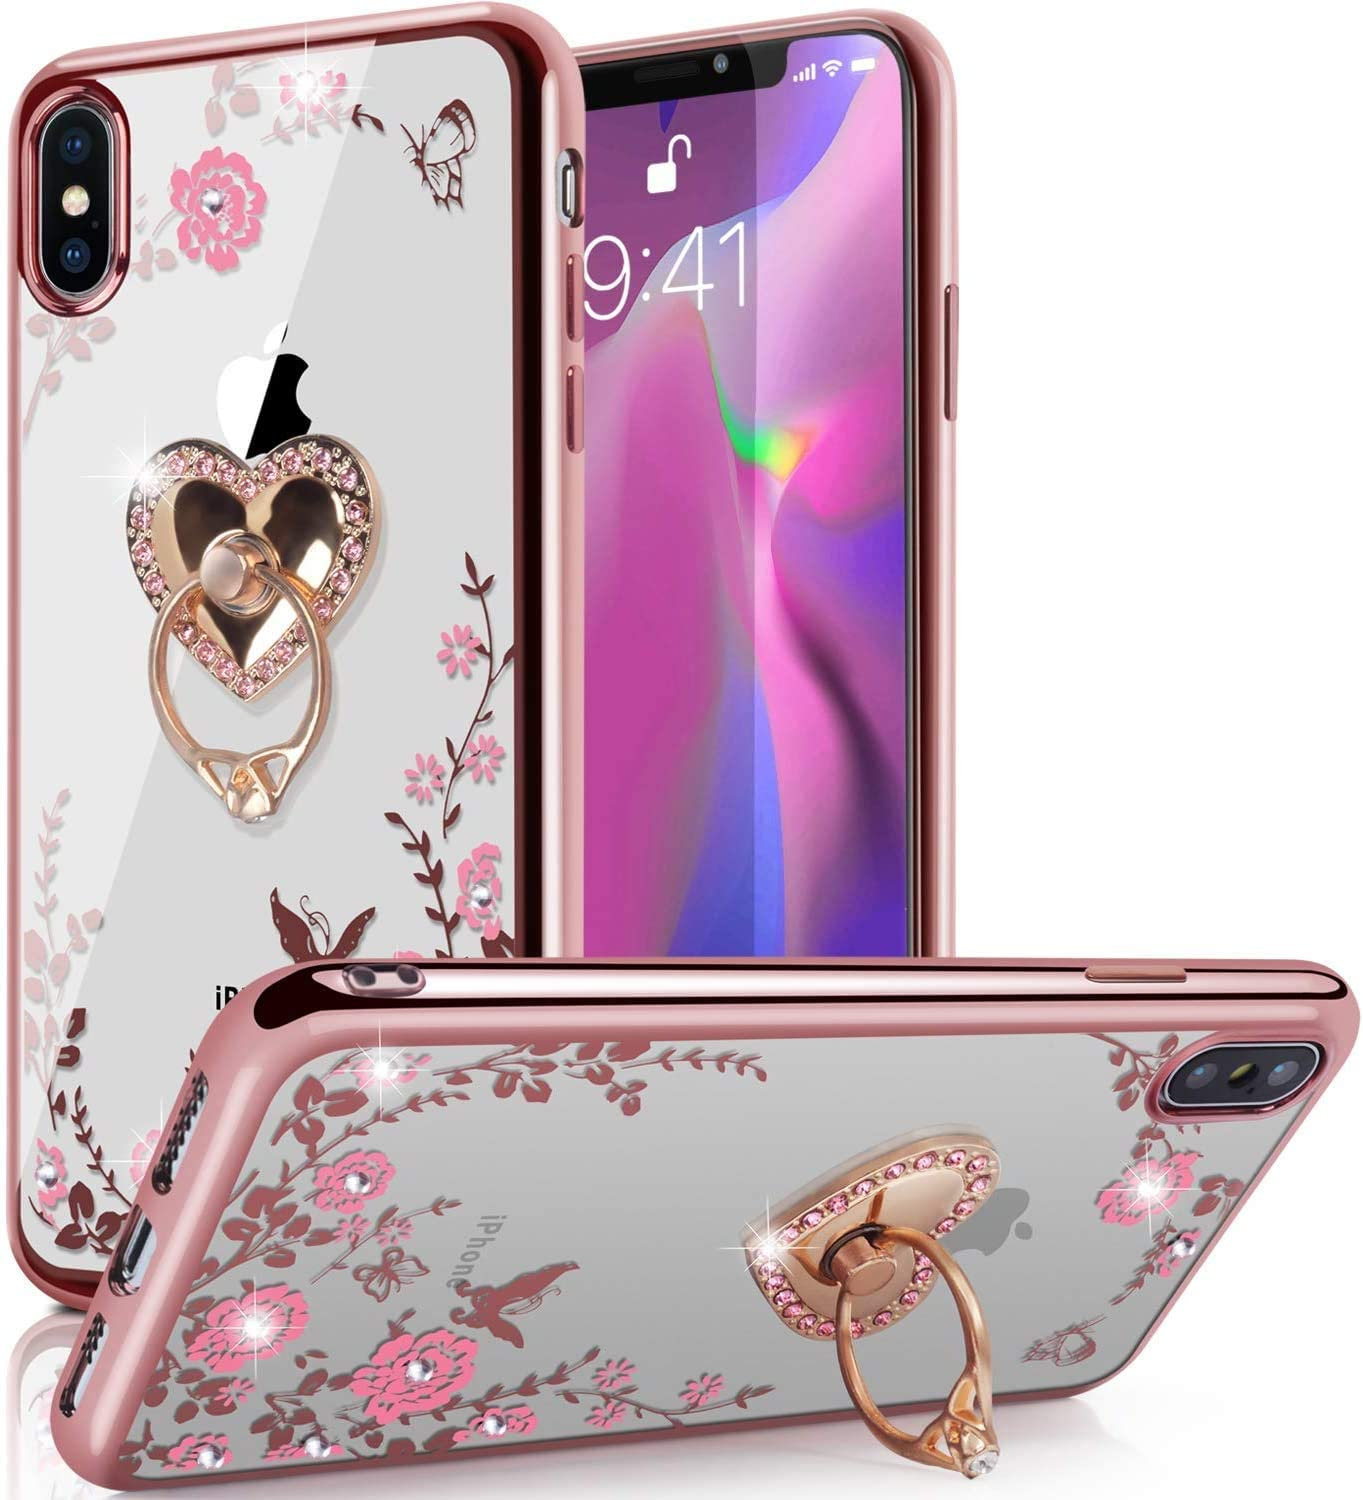 "iPhone Xs Case,iPhone X Case,WATACHE Glitter Sparkly Diamond Secret Garden Floral Butterfly Clear Back Soft TPU Case with Bling Shiny Rhinestone Ring Grip Holder Stand for iPhone Xs/X 5.8"",Rose Gold"